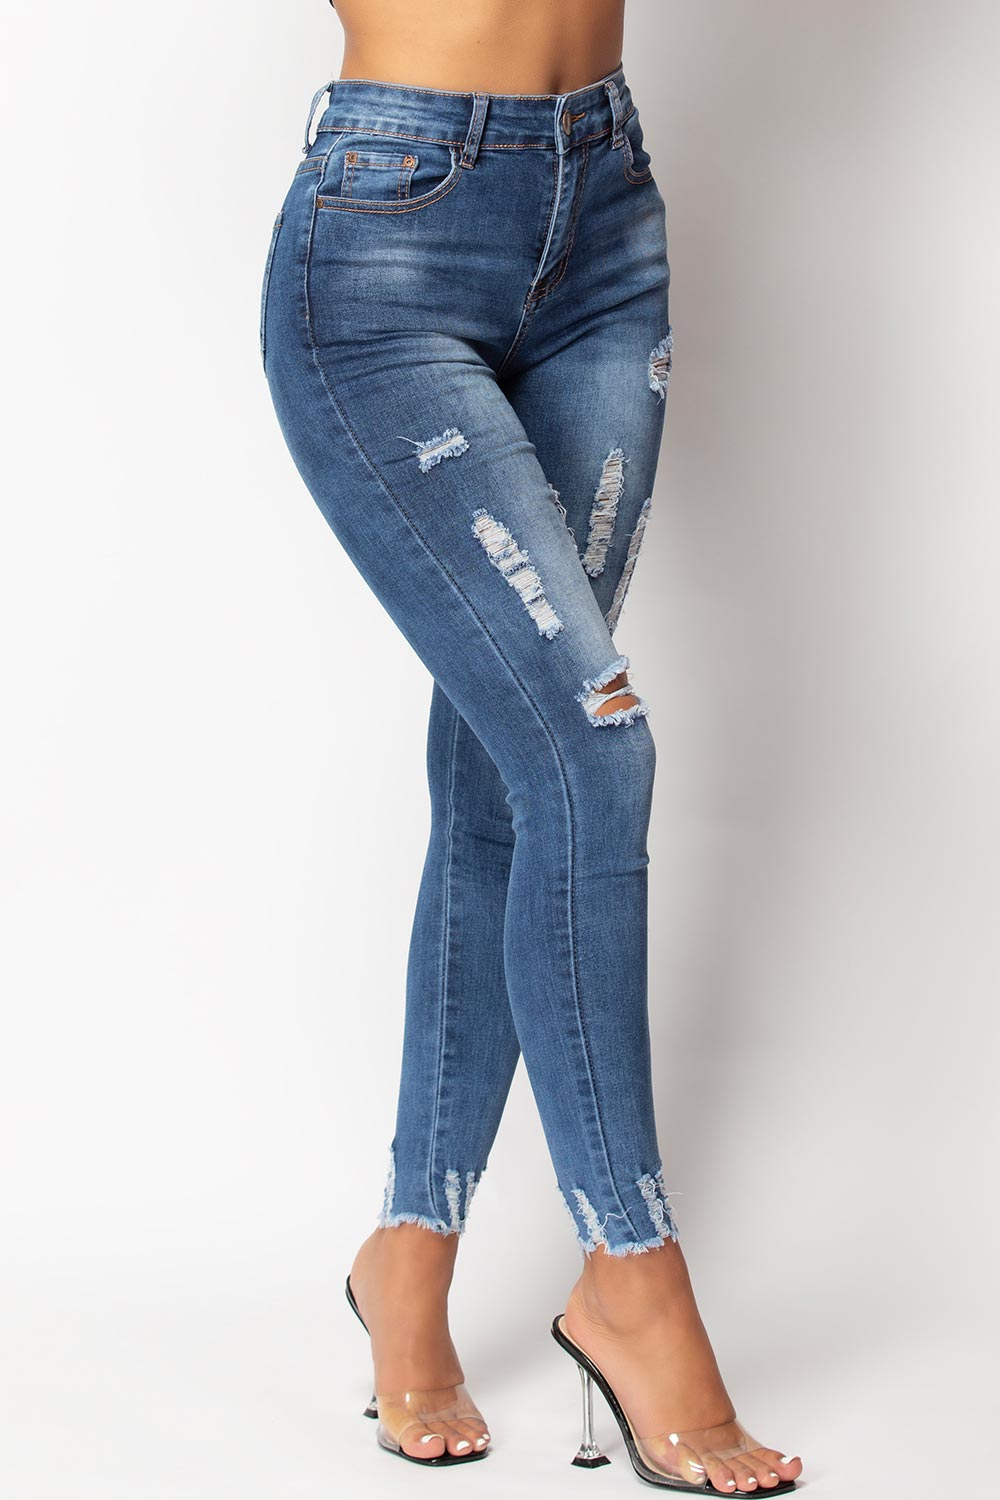 womens ripped jeans uk